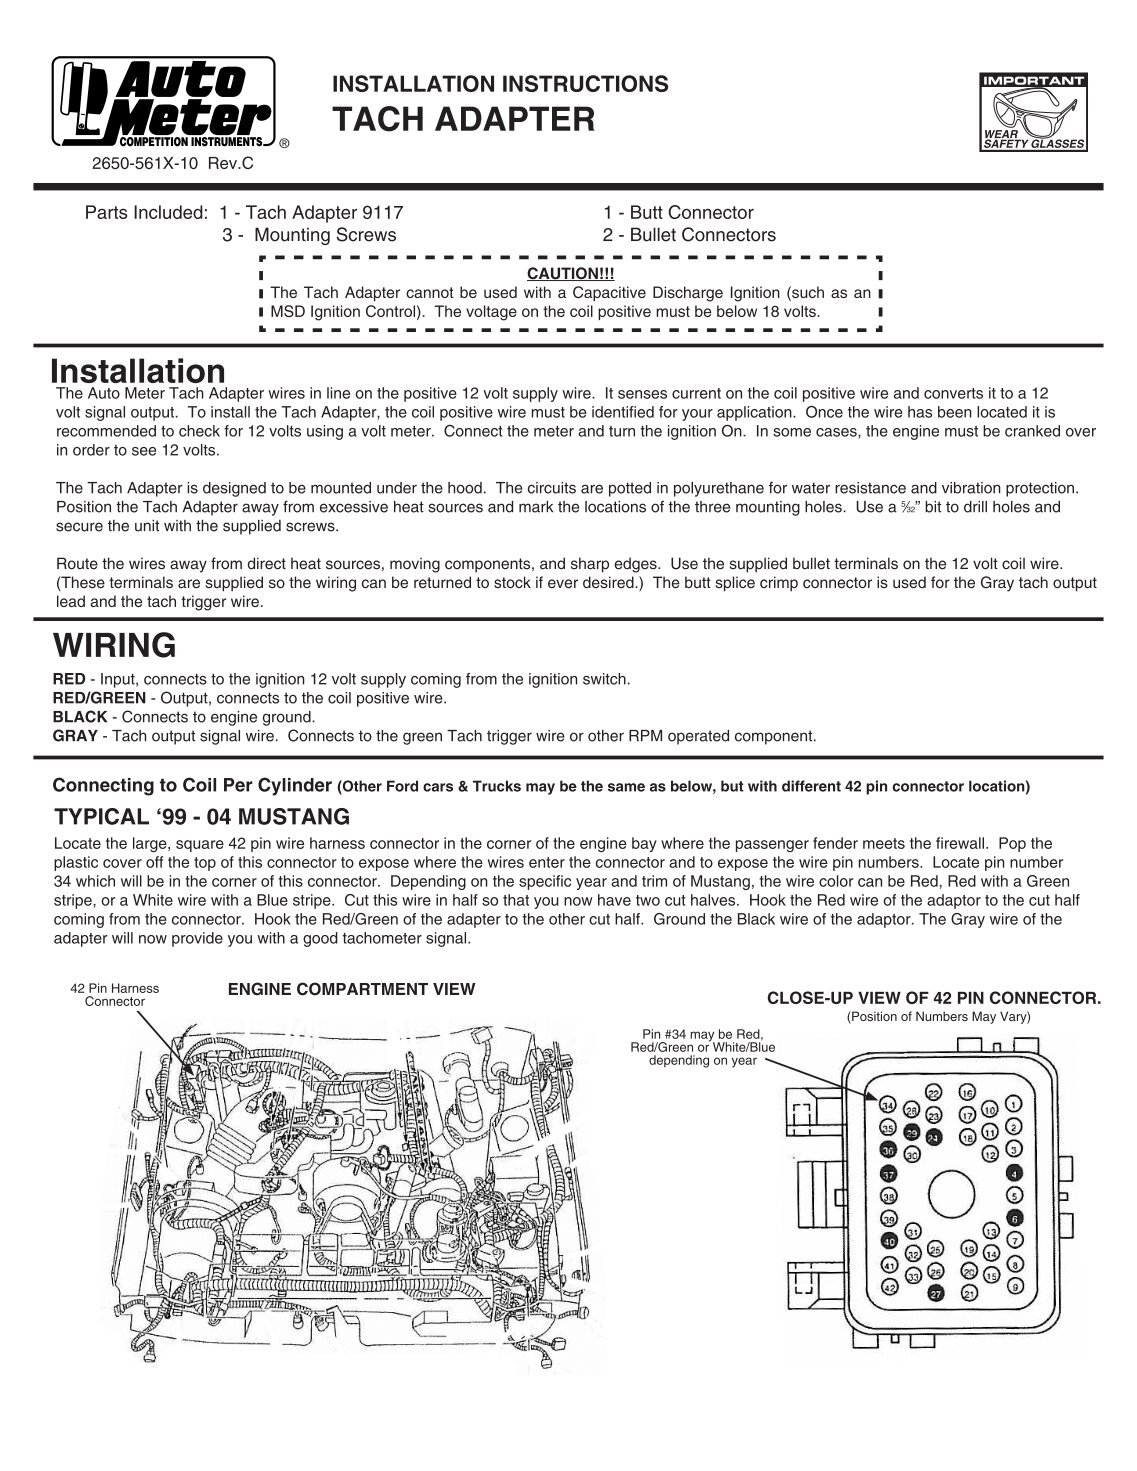 tach wiring diagram kenmore dryer model 110 dixco 25 images